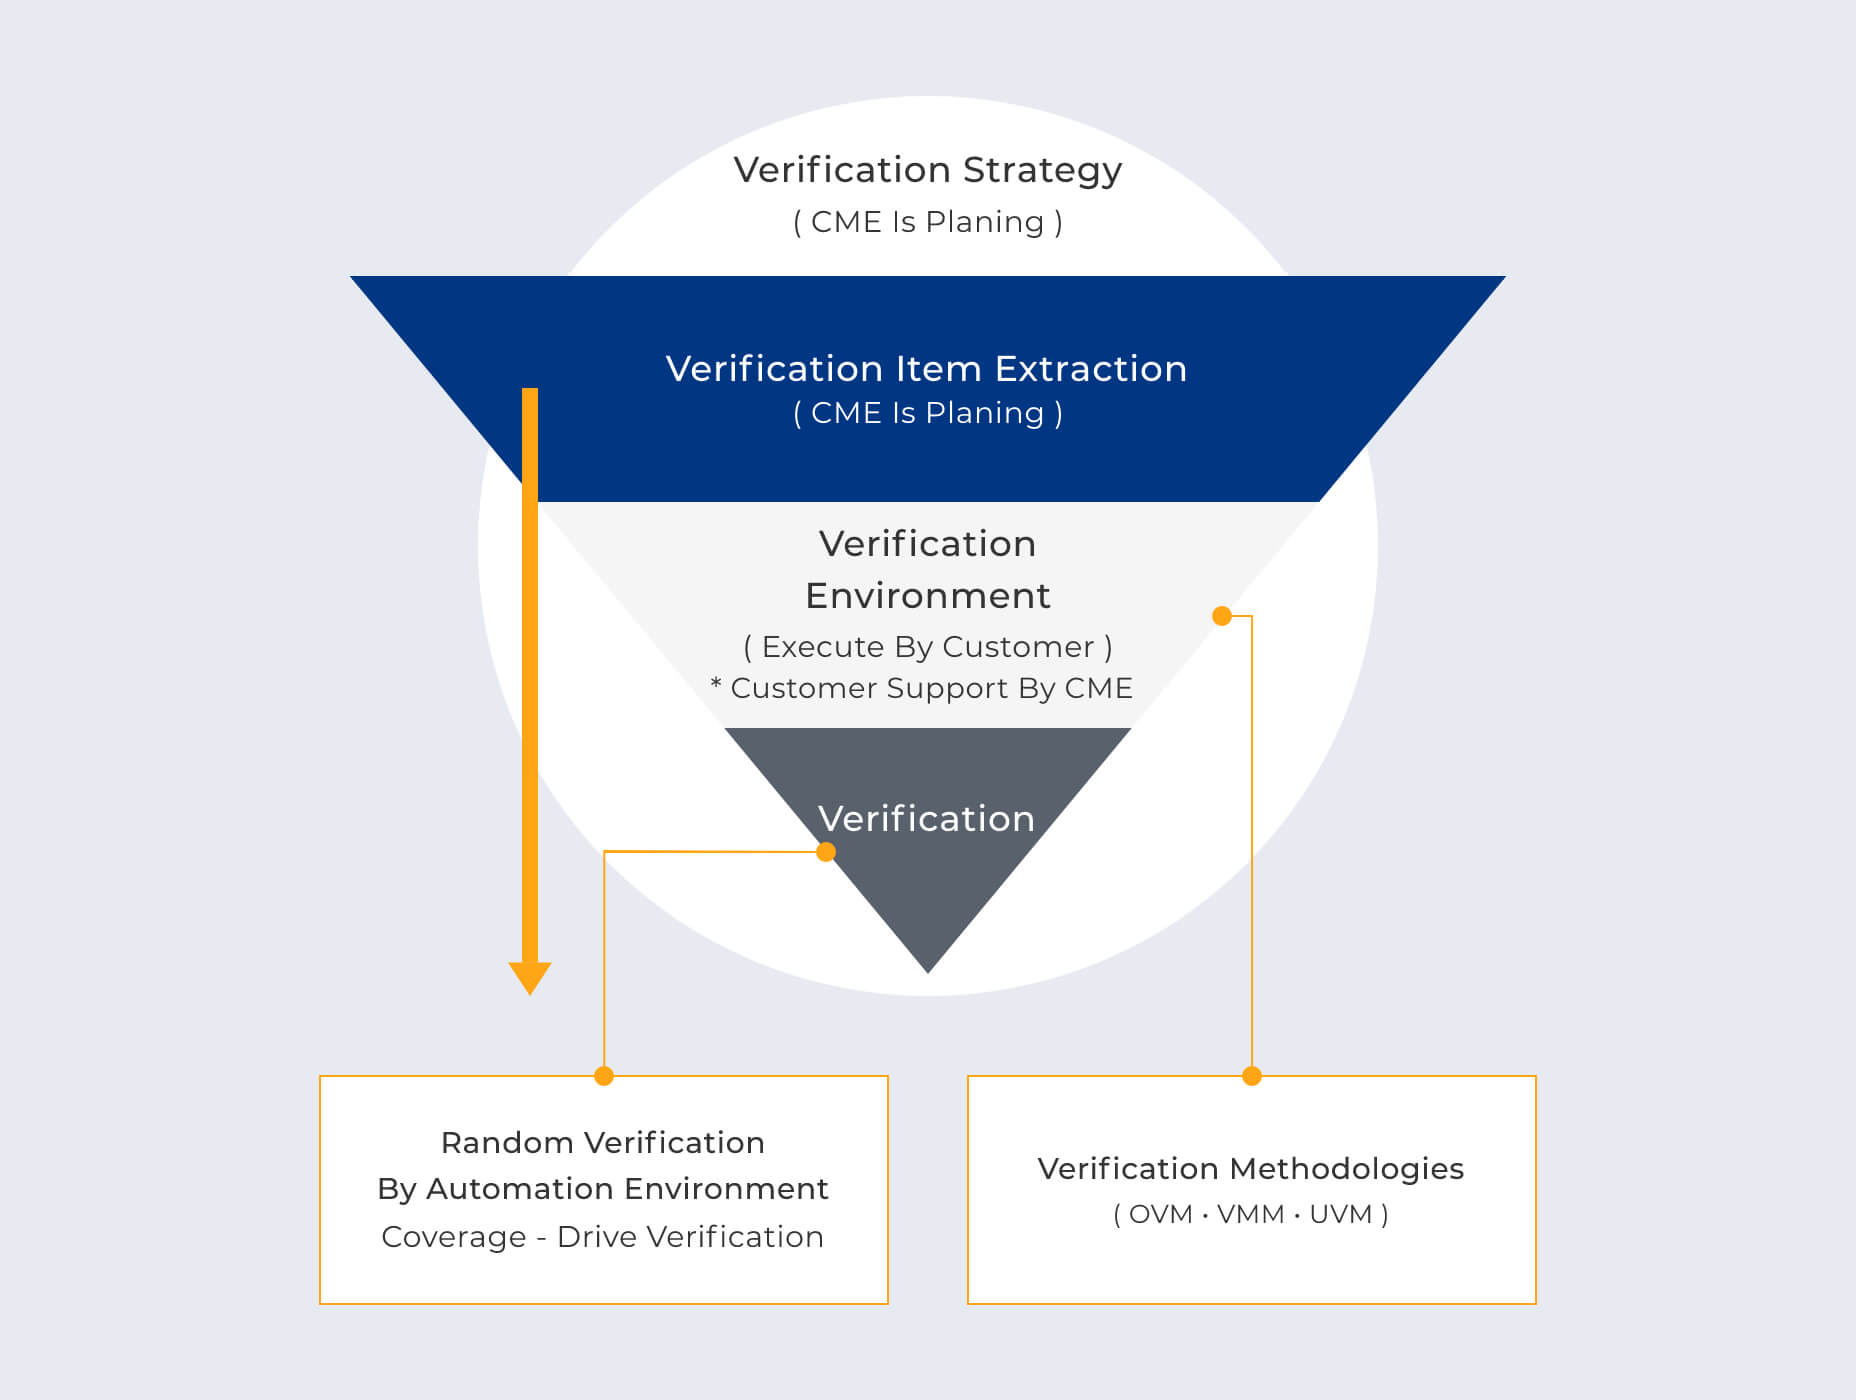 Verification Item Extraction Services